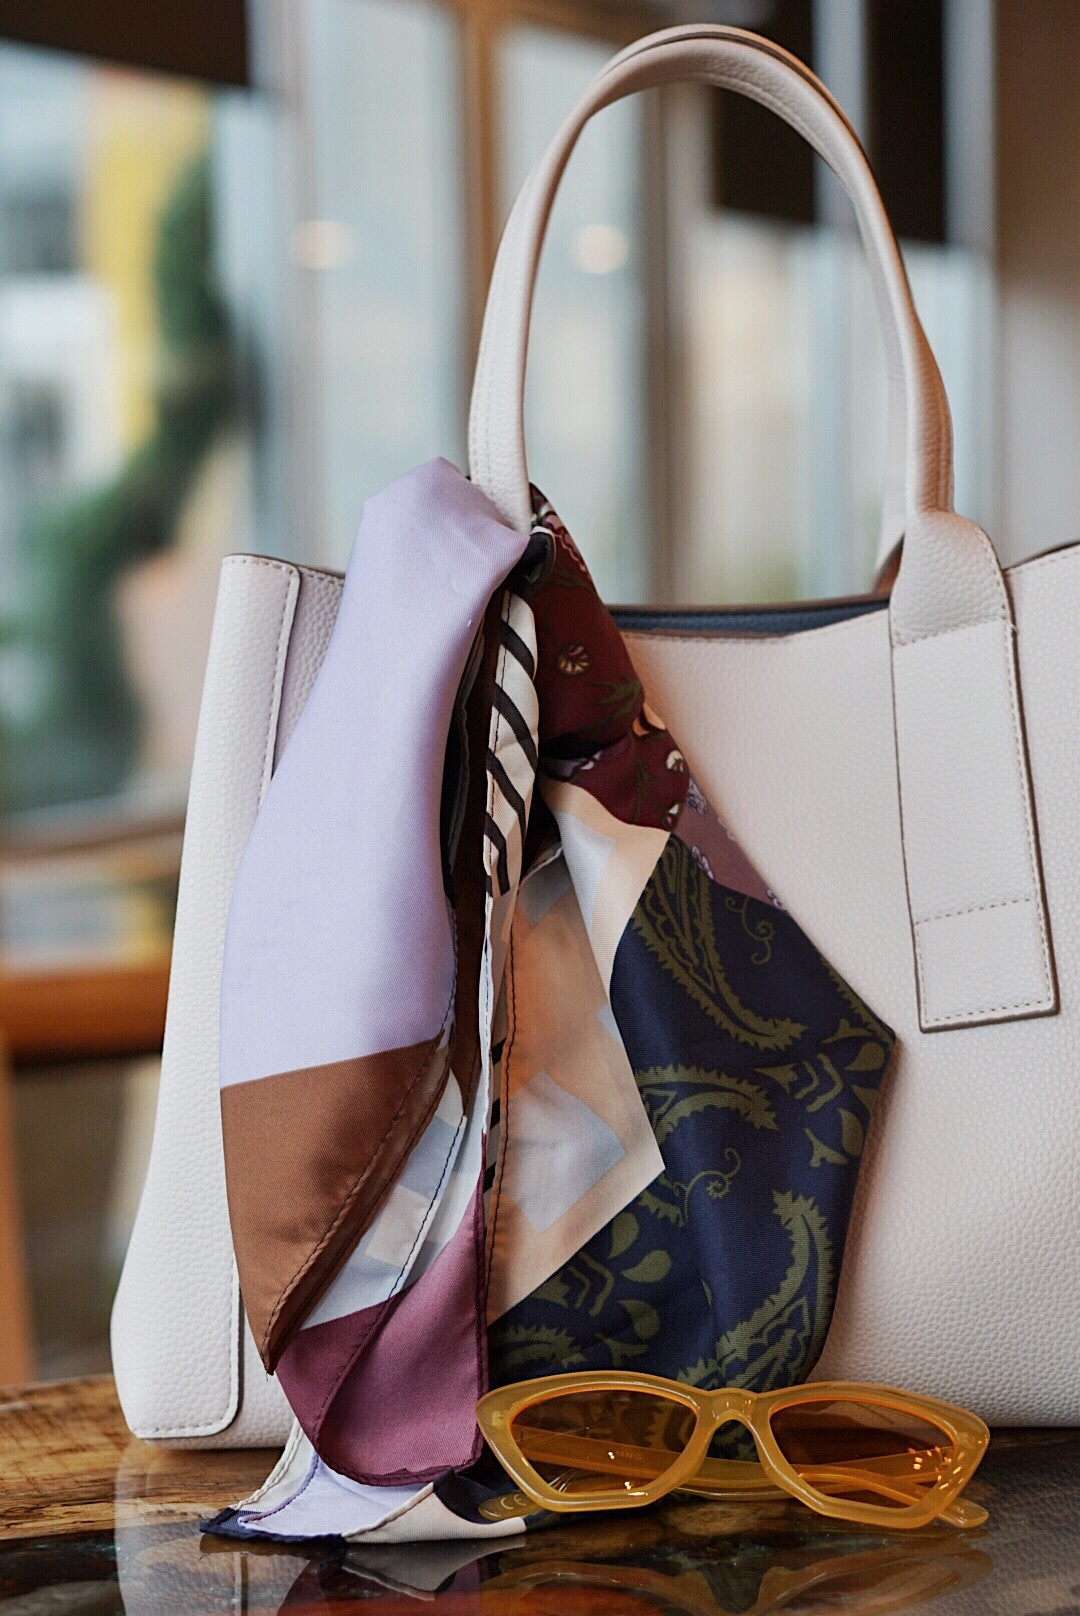 white tote, silk scarf with jewel tones, cat eye sunglasses, summer to fall accessories, fall fashion in the south, how to accessorize for a mild fall season, summer to fall accessories